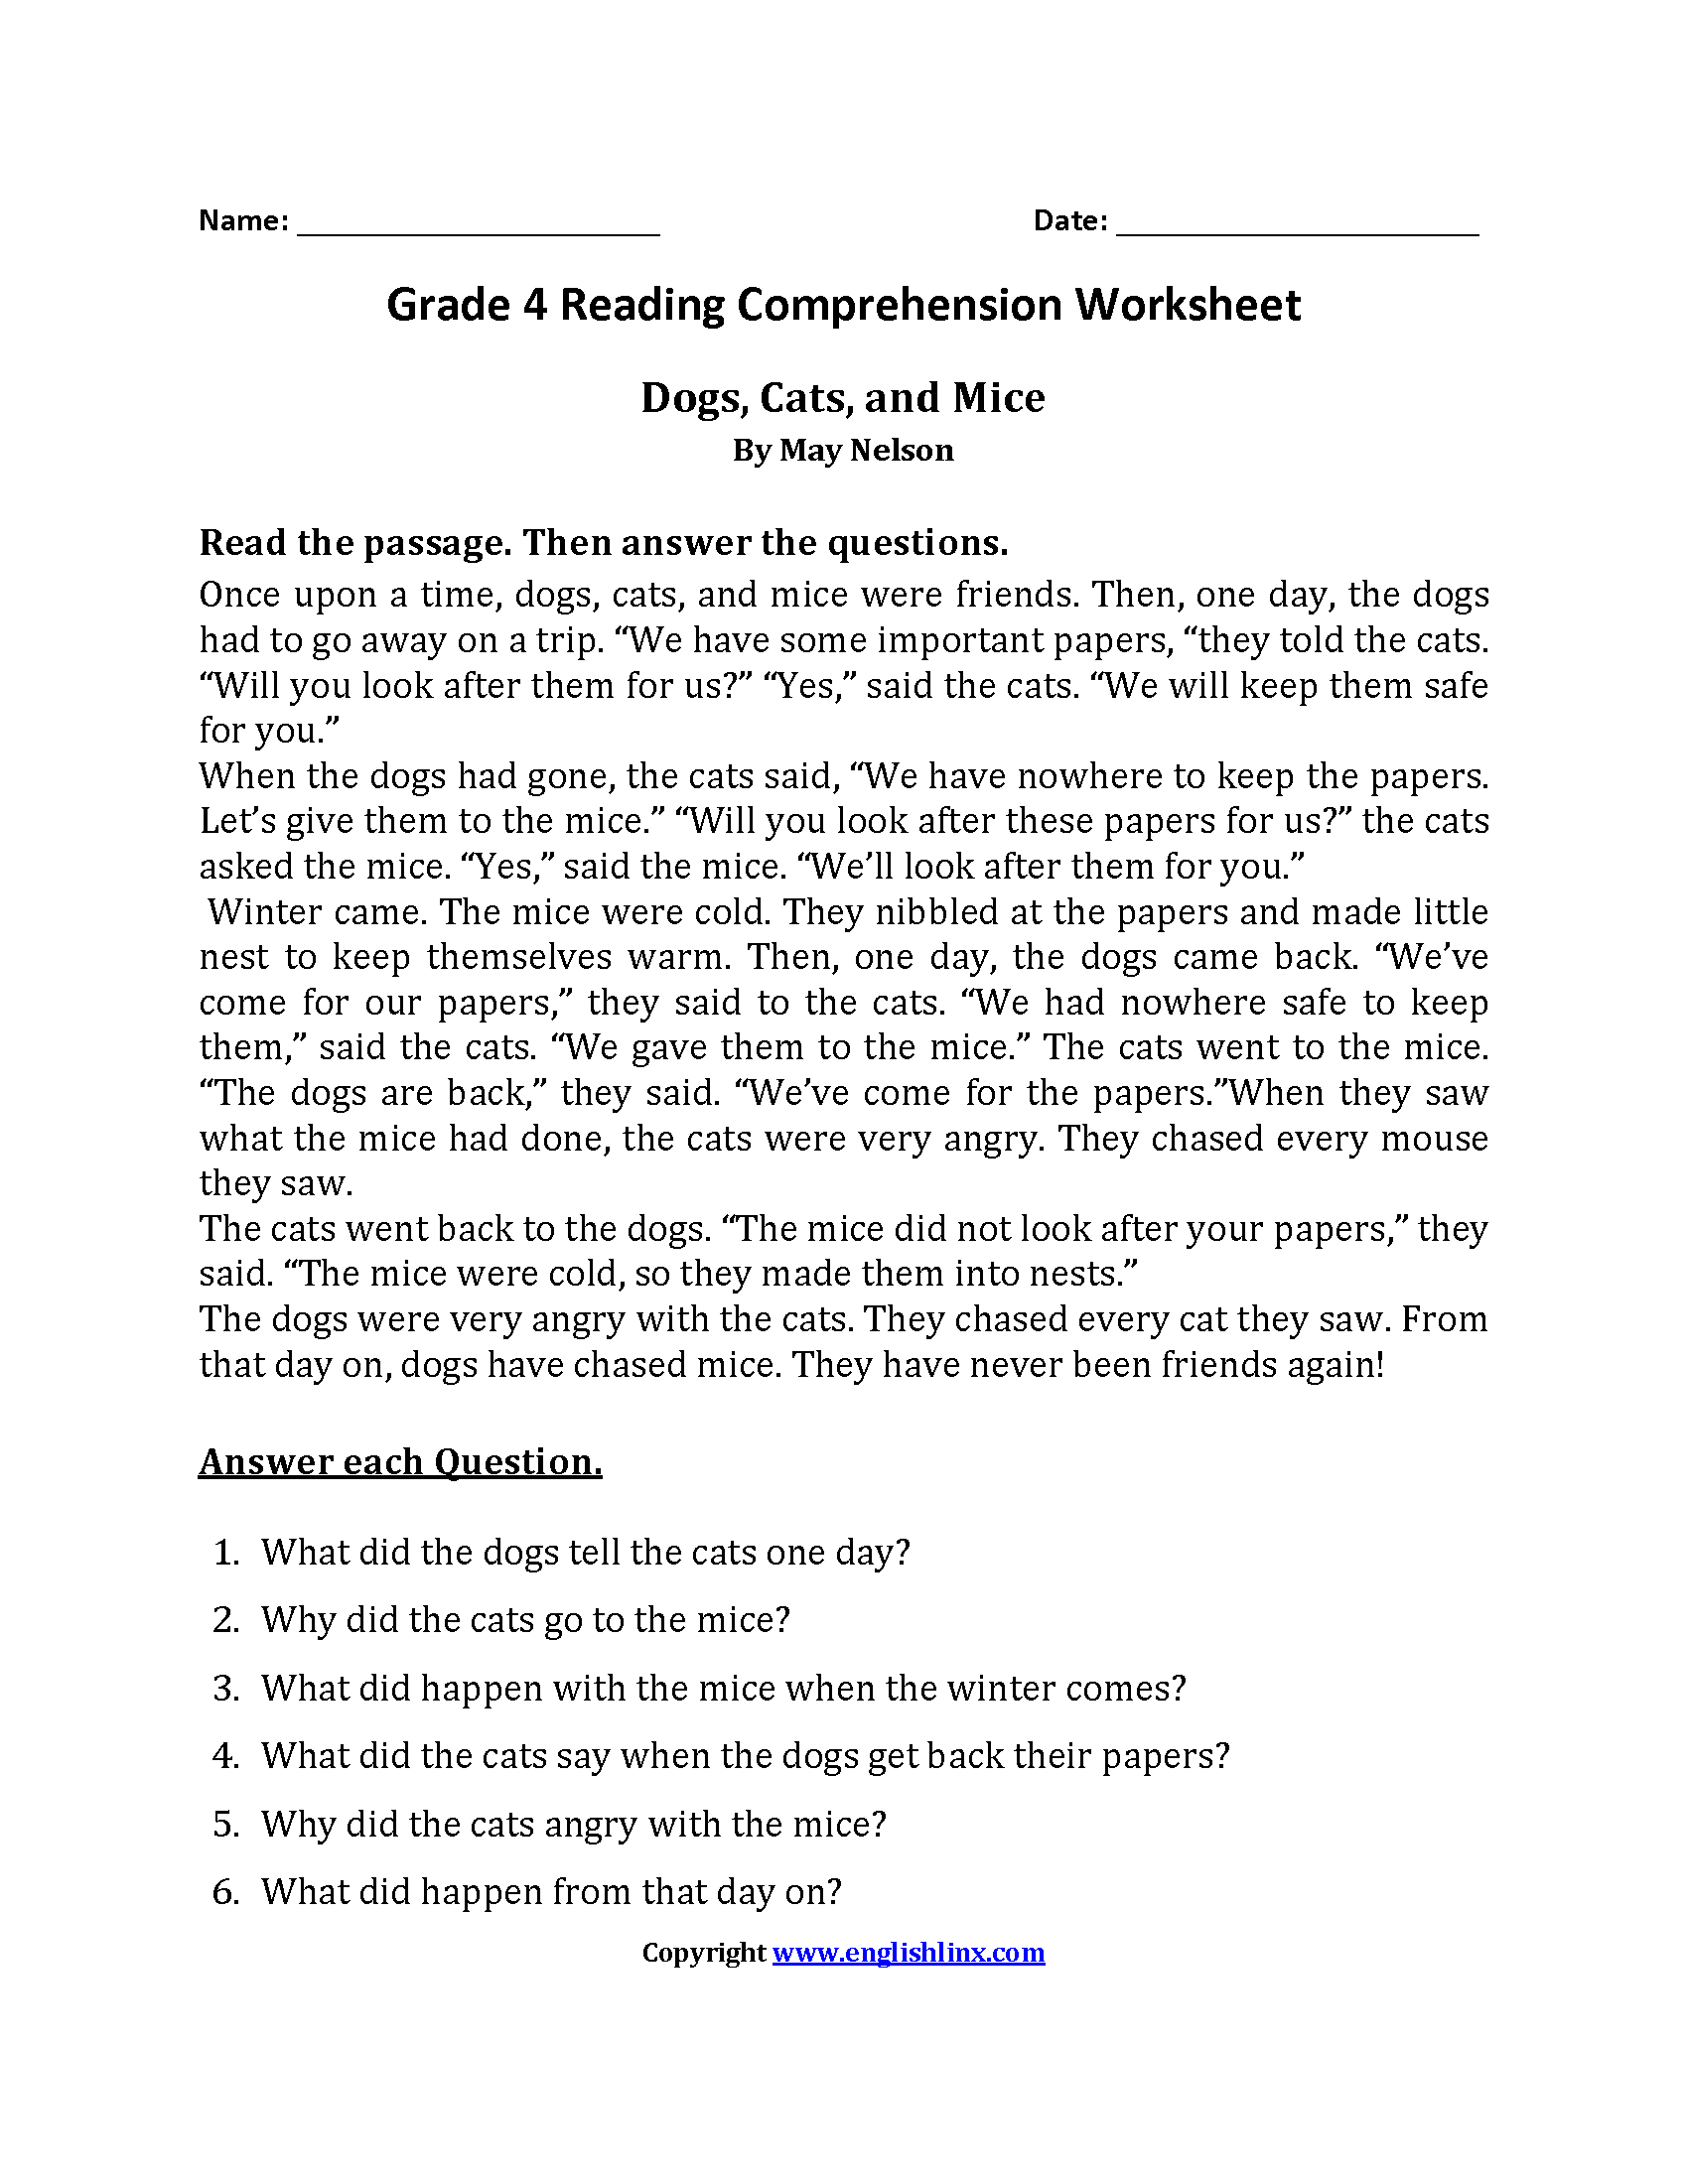 Worksheet On Time Class 4